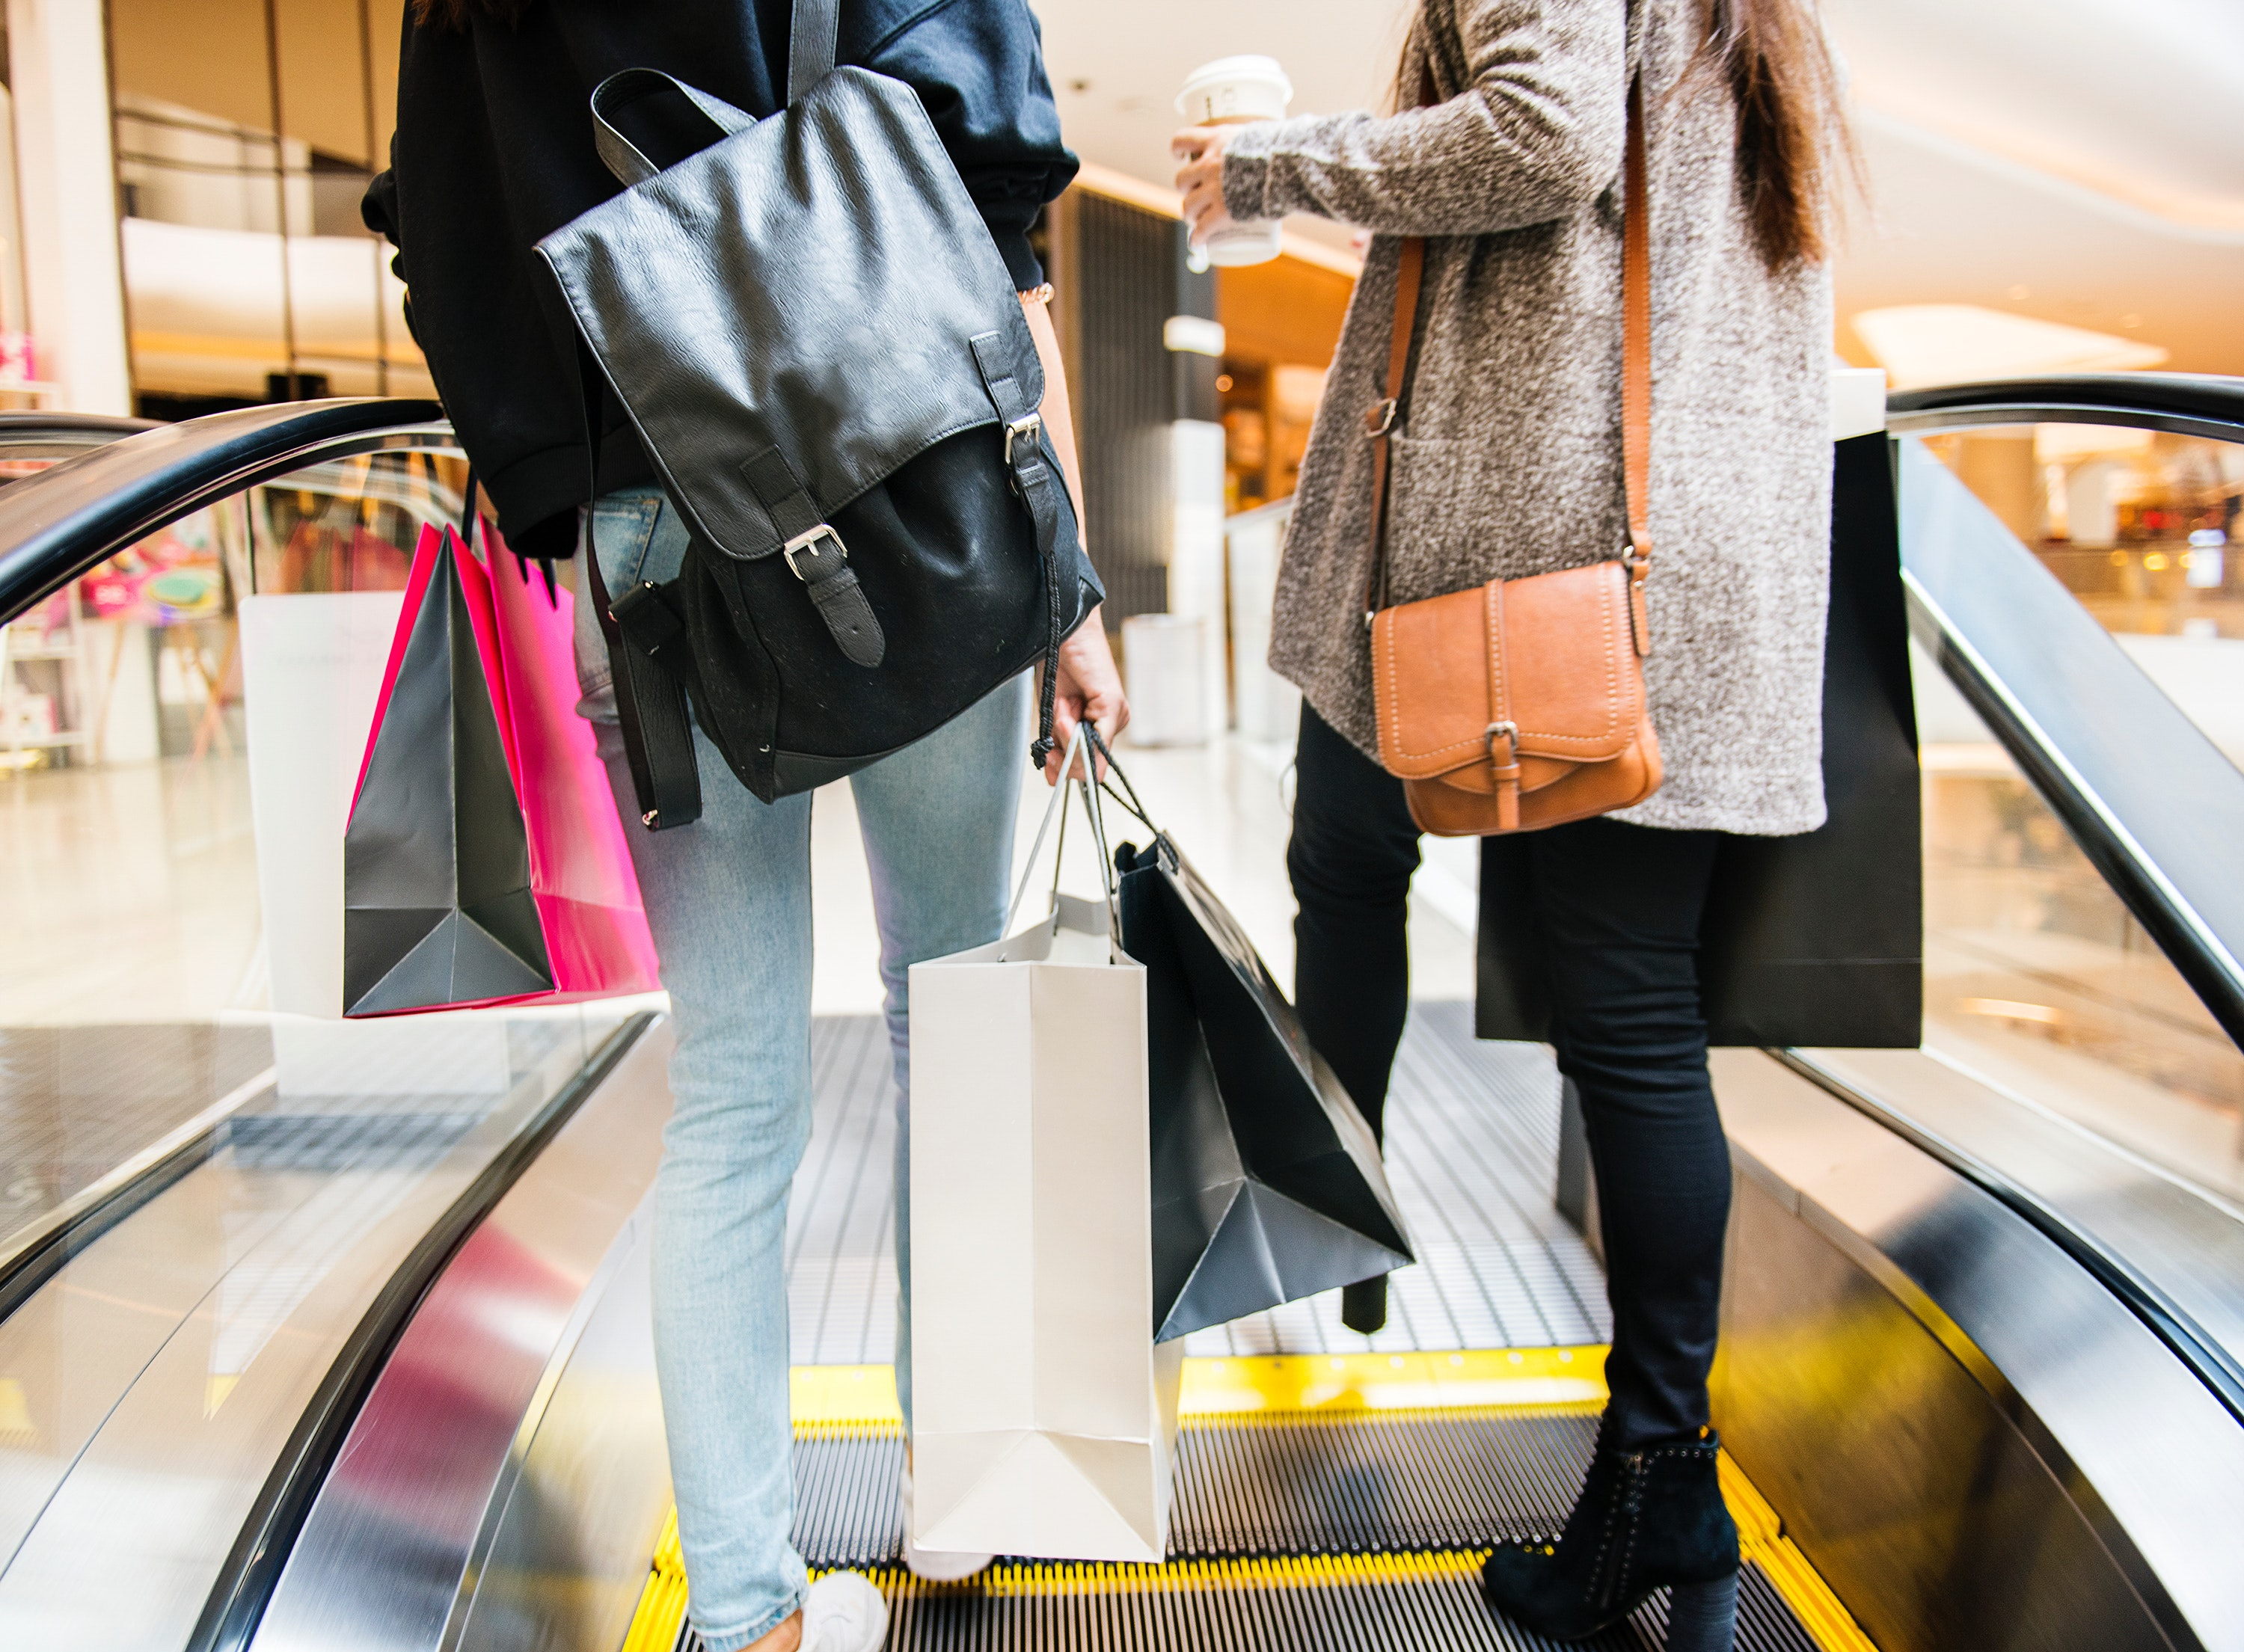 Two women holding shopping bags while riding an escalator.